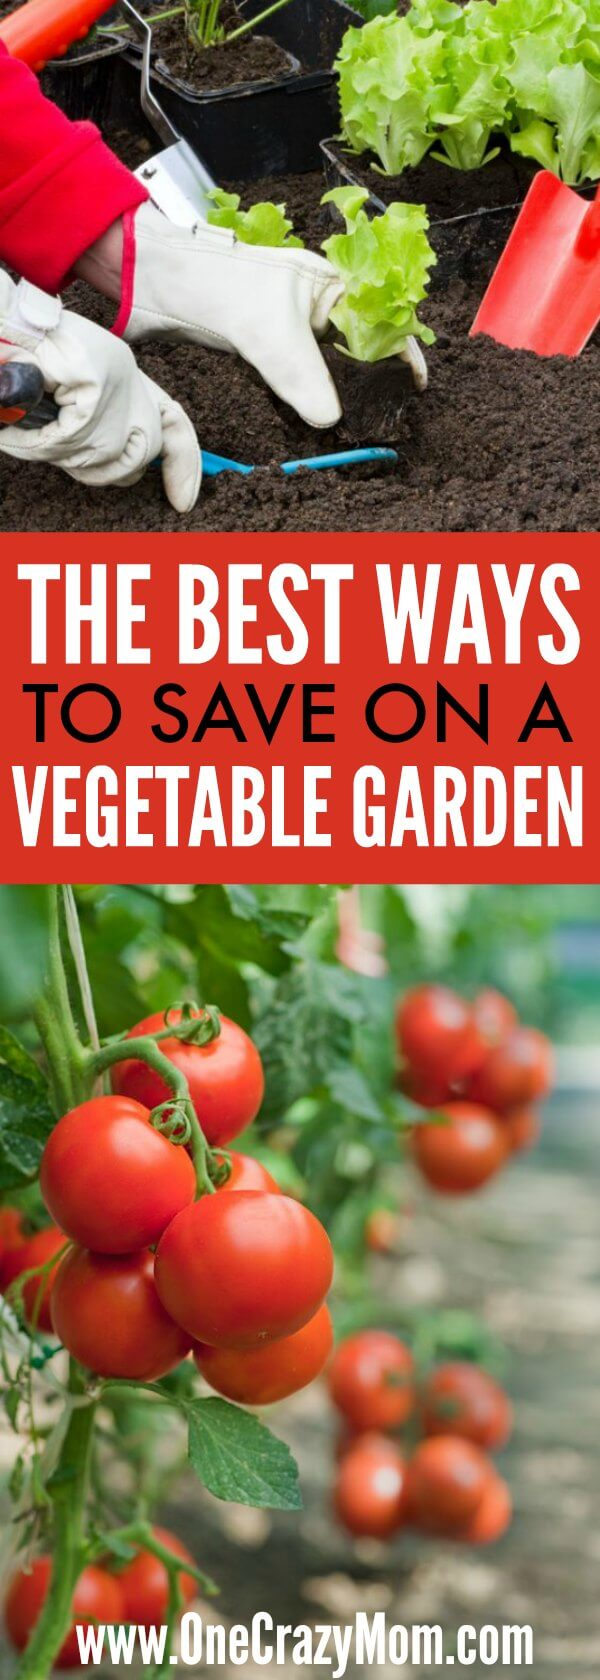 Gardening doesn't have to be expensive once you know how to save money in the garden. Find out the best ways to save money in the vegetable garden. 5 Vegetable Garden Money Saving tips. Learn the best ways to save money in the vegetable garden!